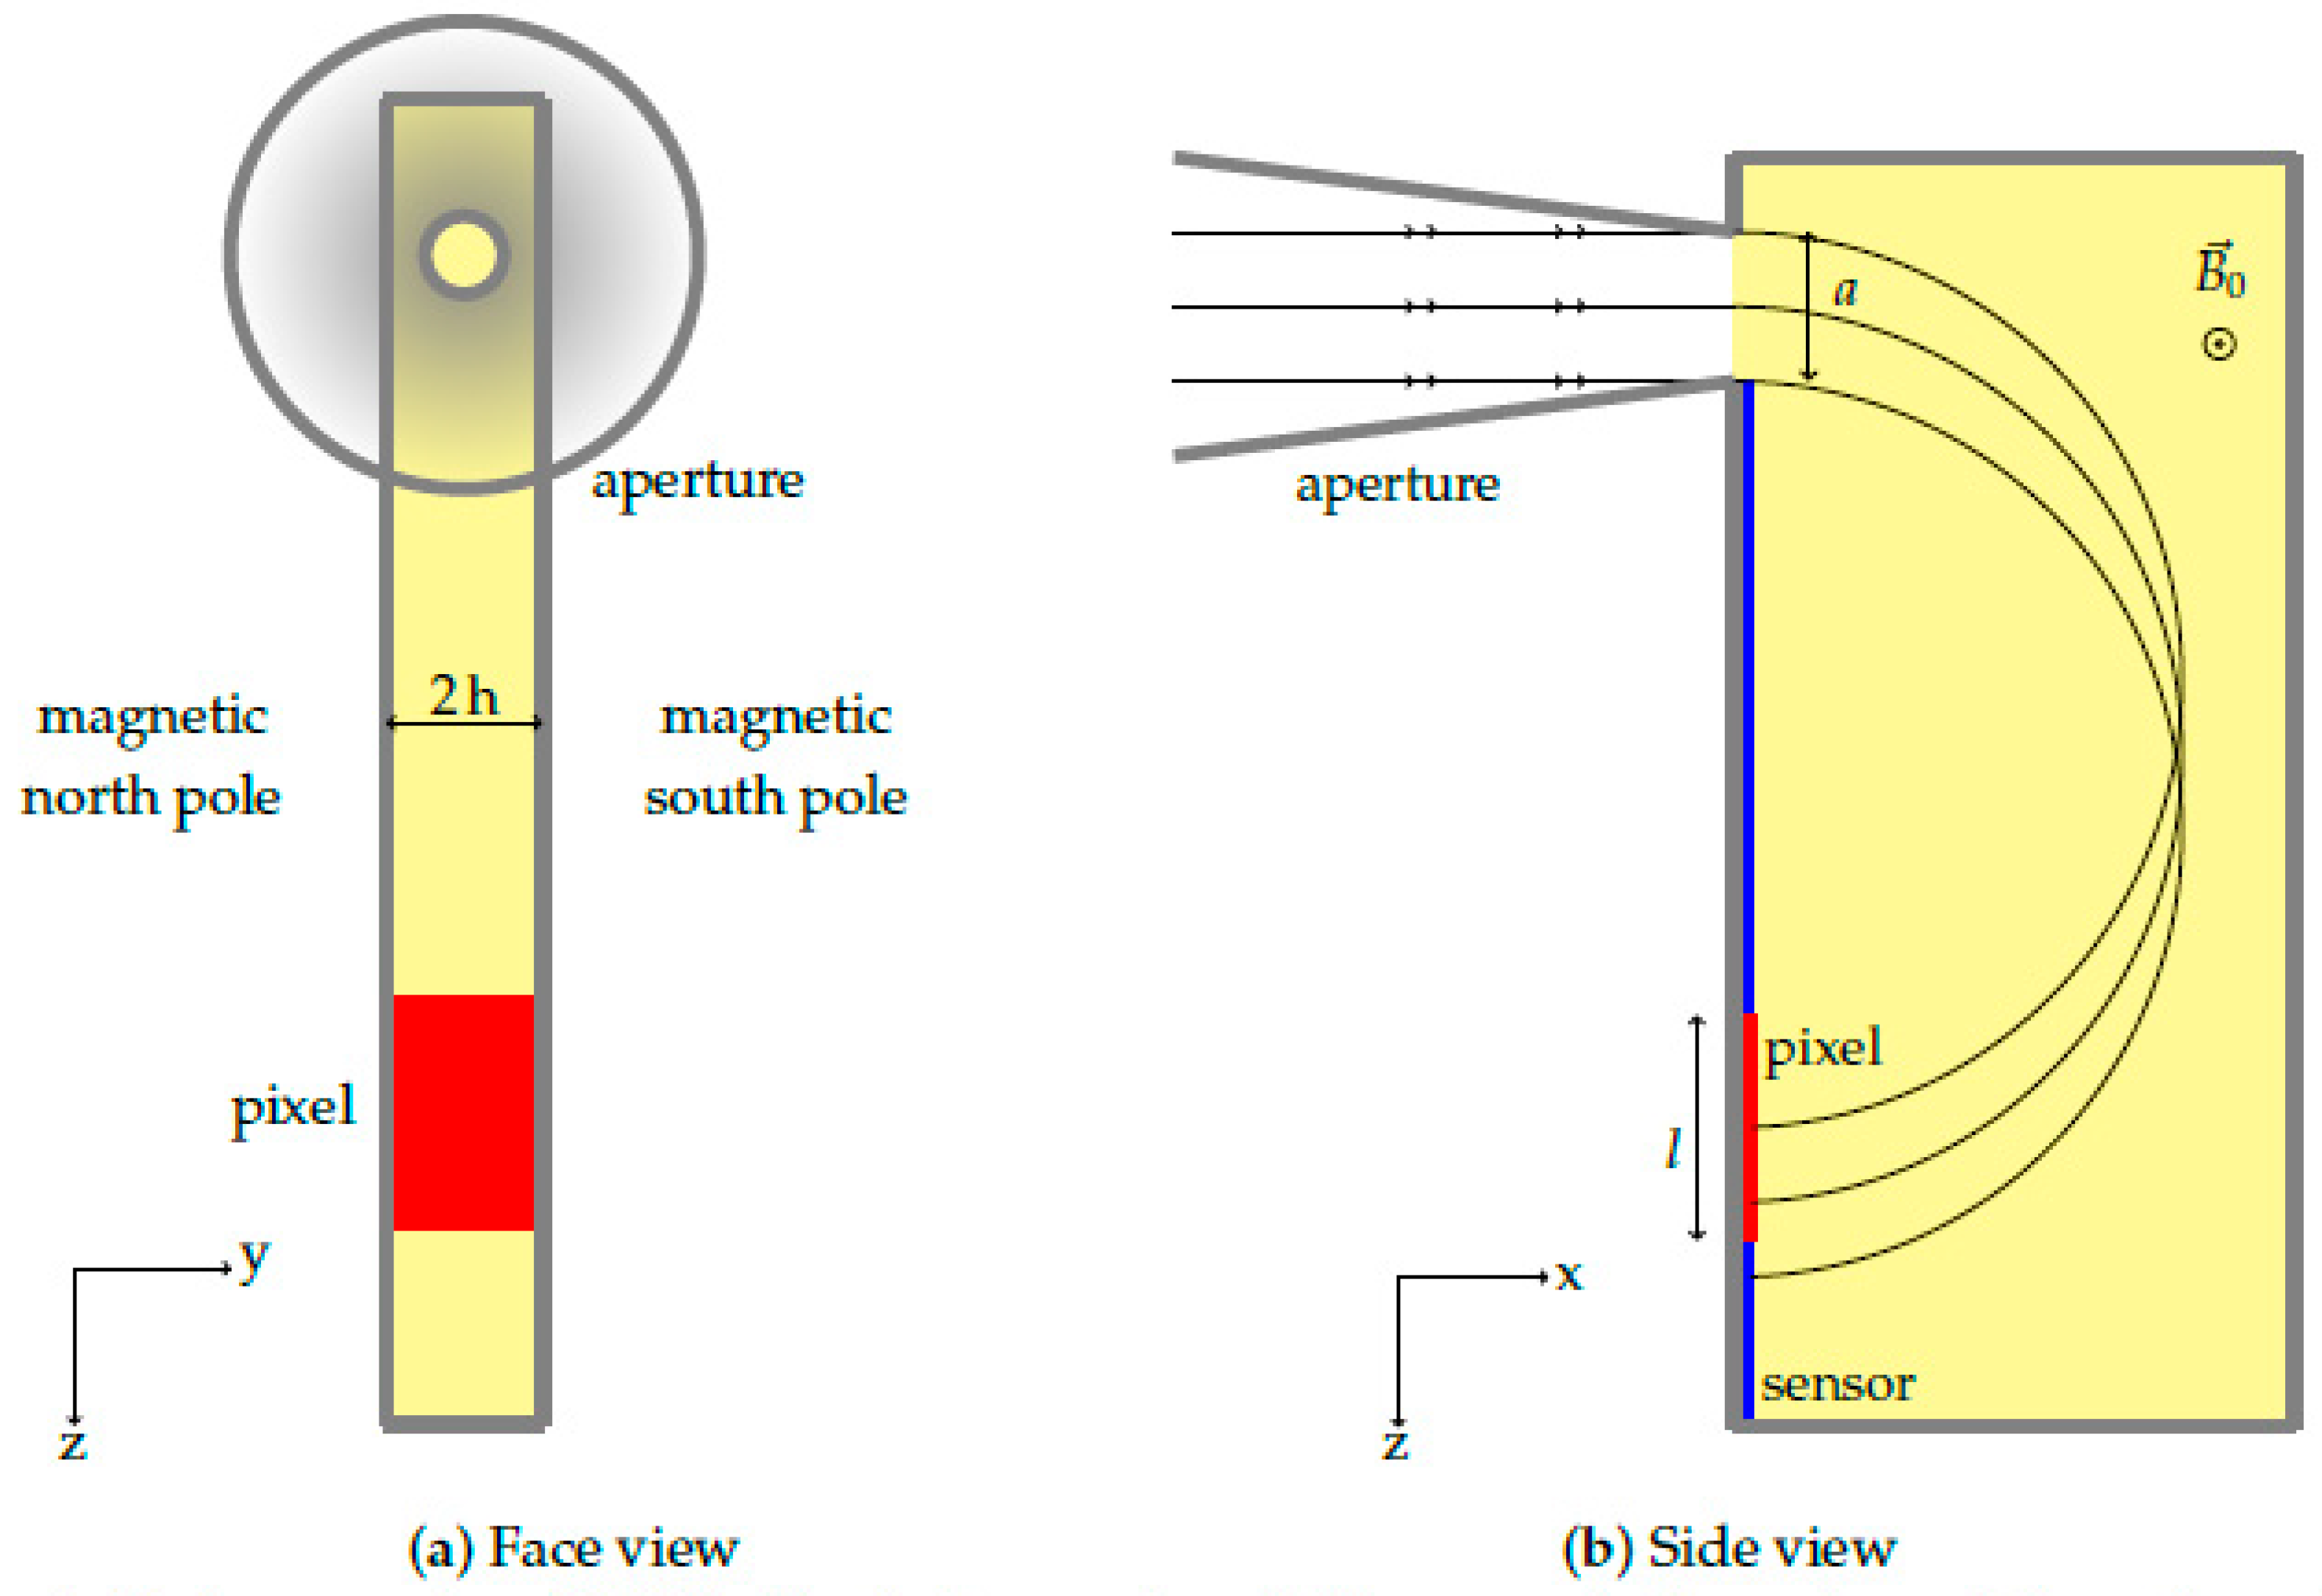 A schematic showing the instrument geometry from viewpoints.